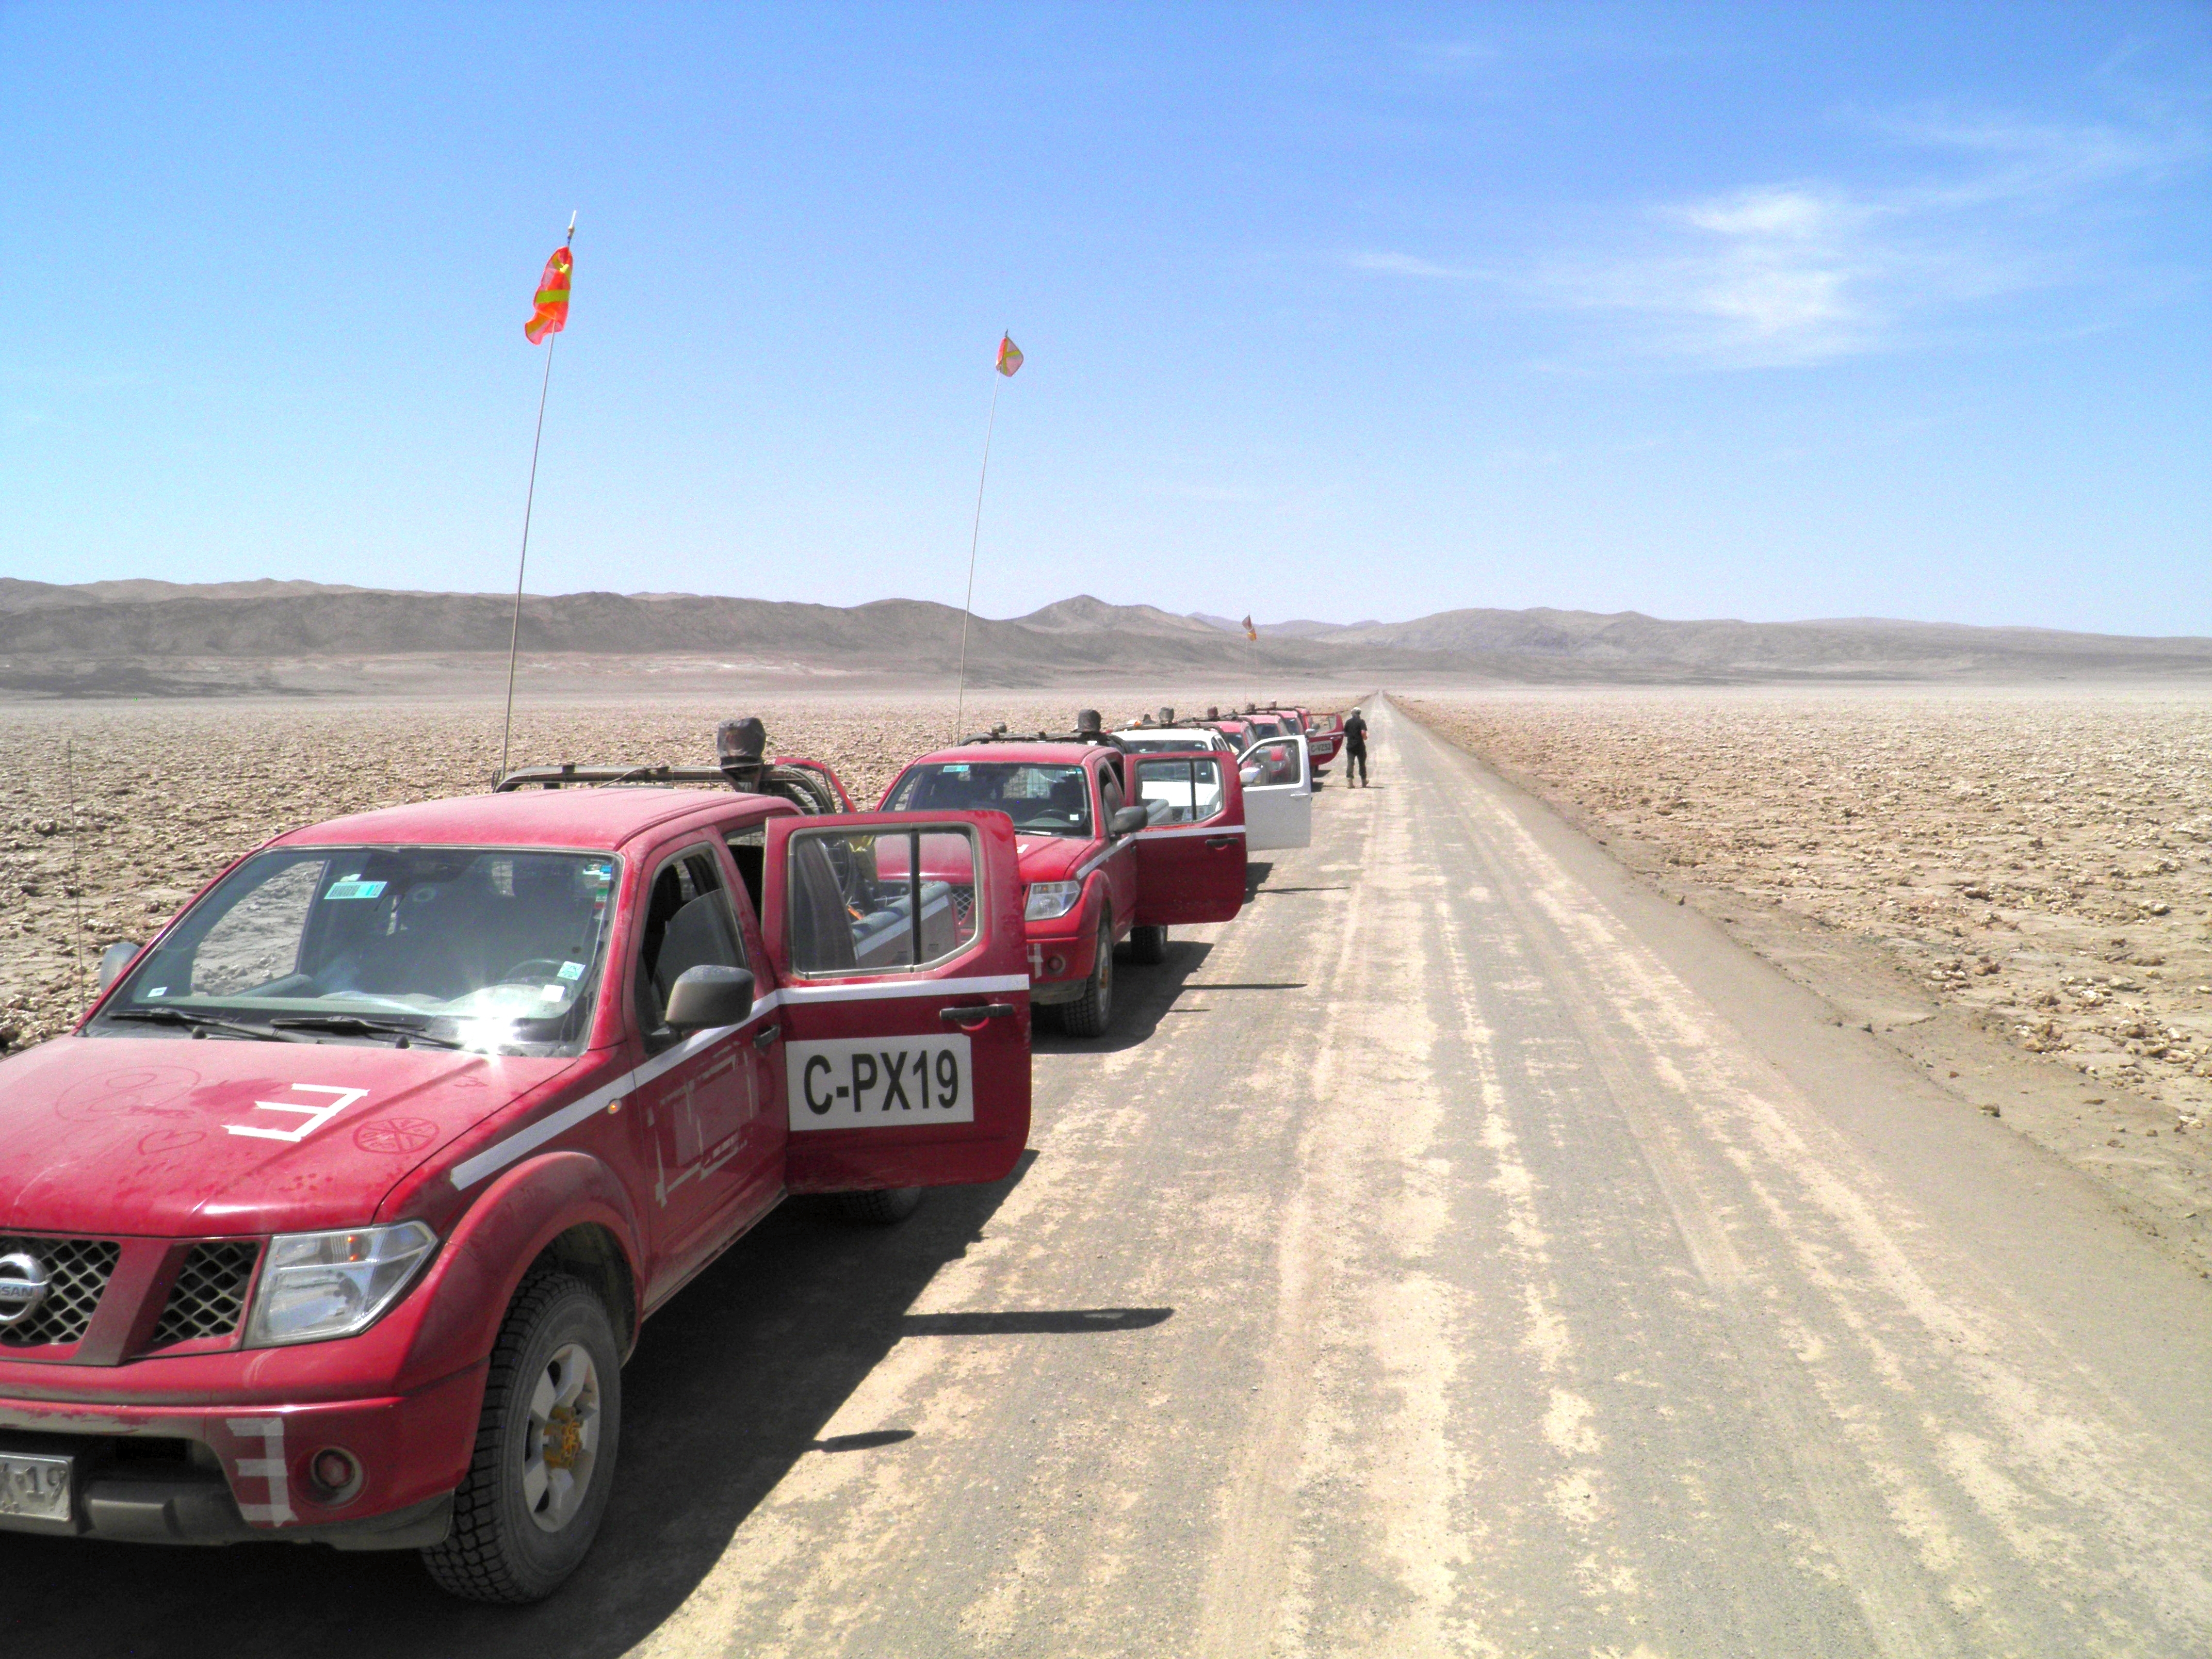 Expedition with off-road vehicles to the Atacama Desert